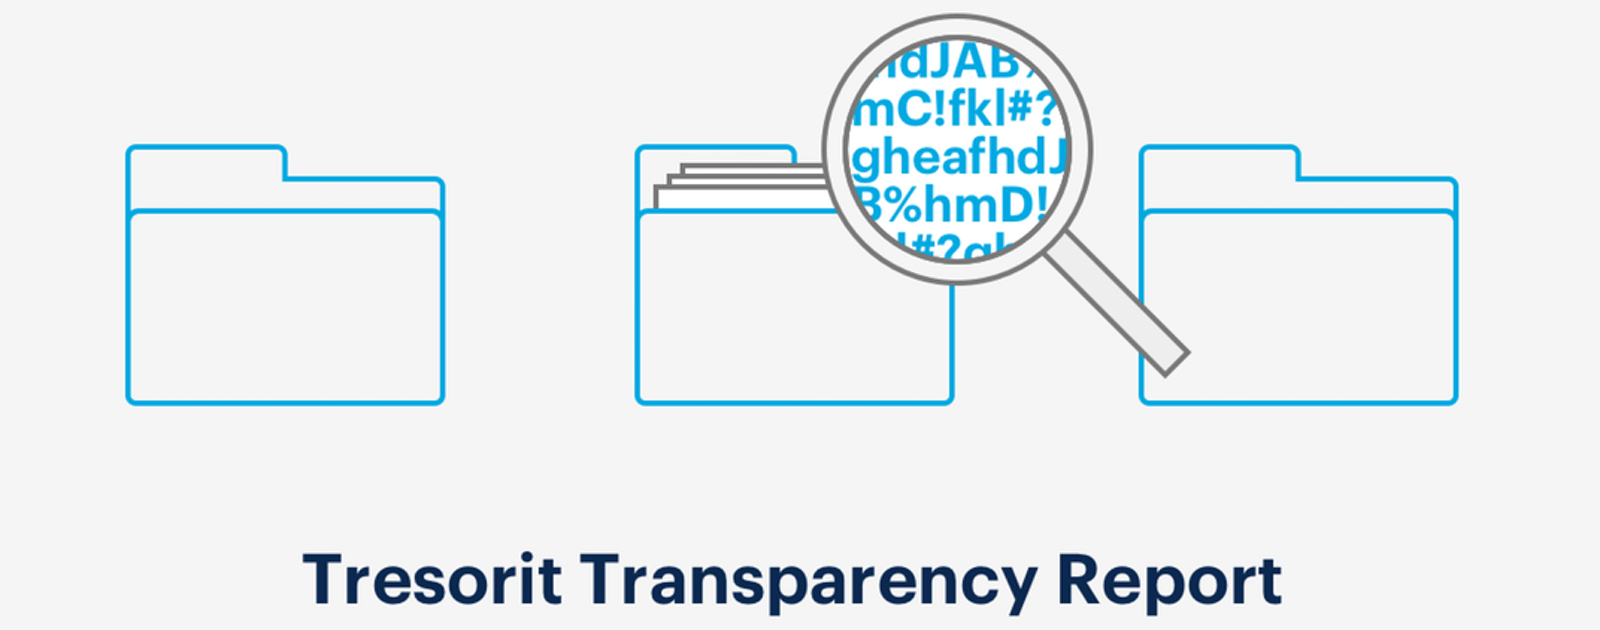 Private Cloud Storage App Tresorit Releases First Transparency Report - The Mac Observer